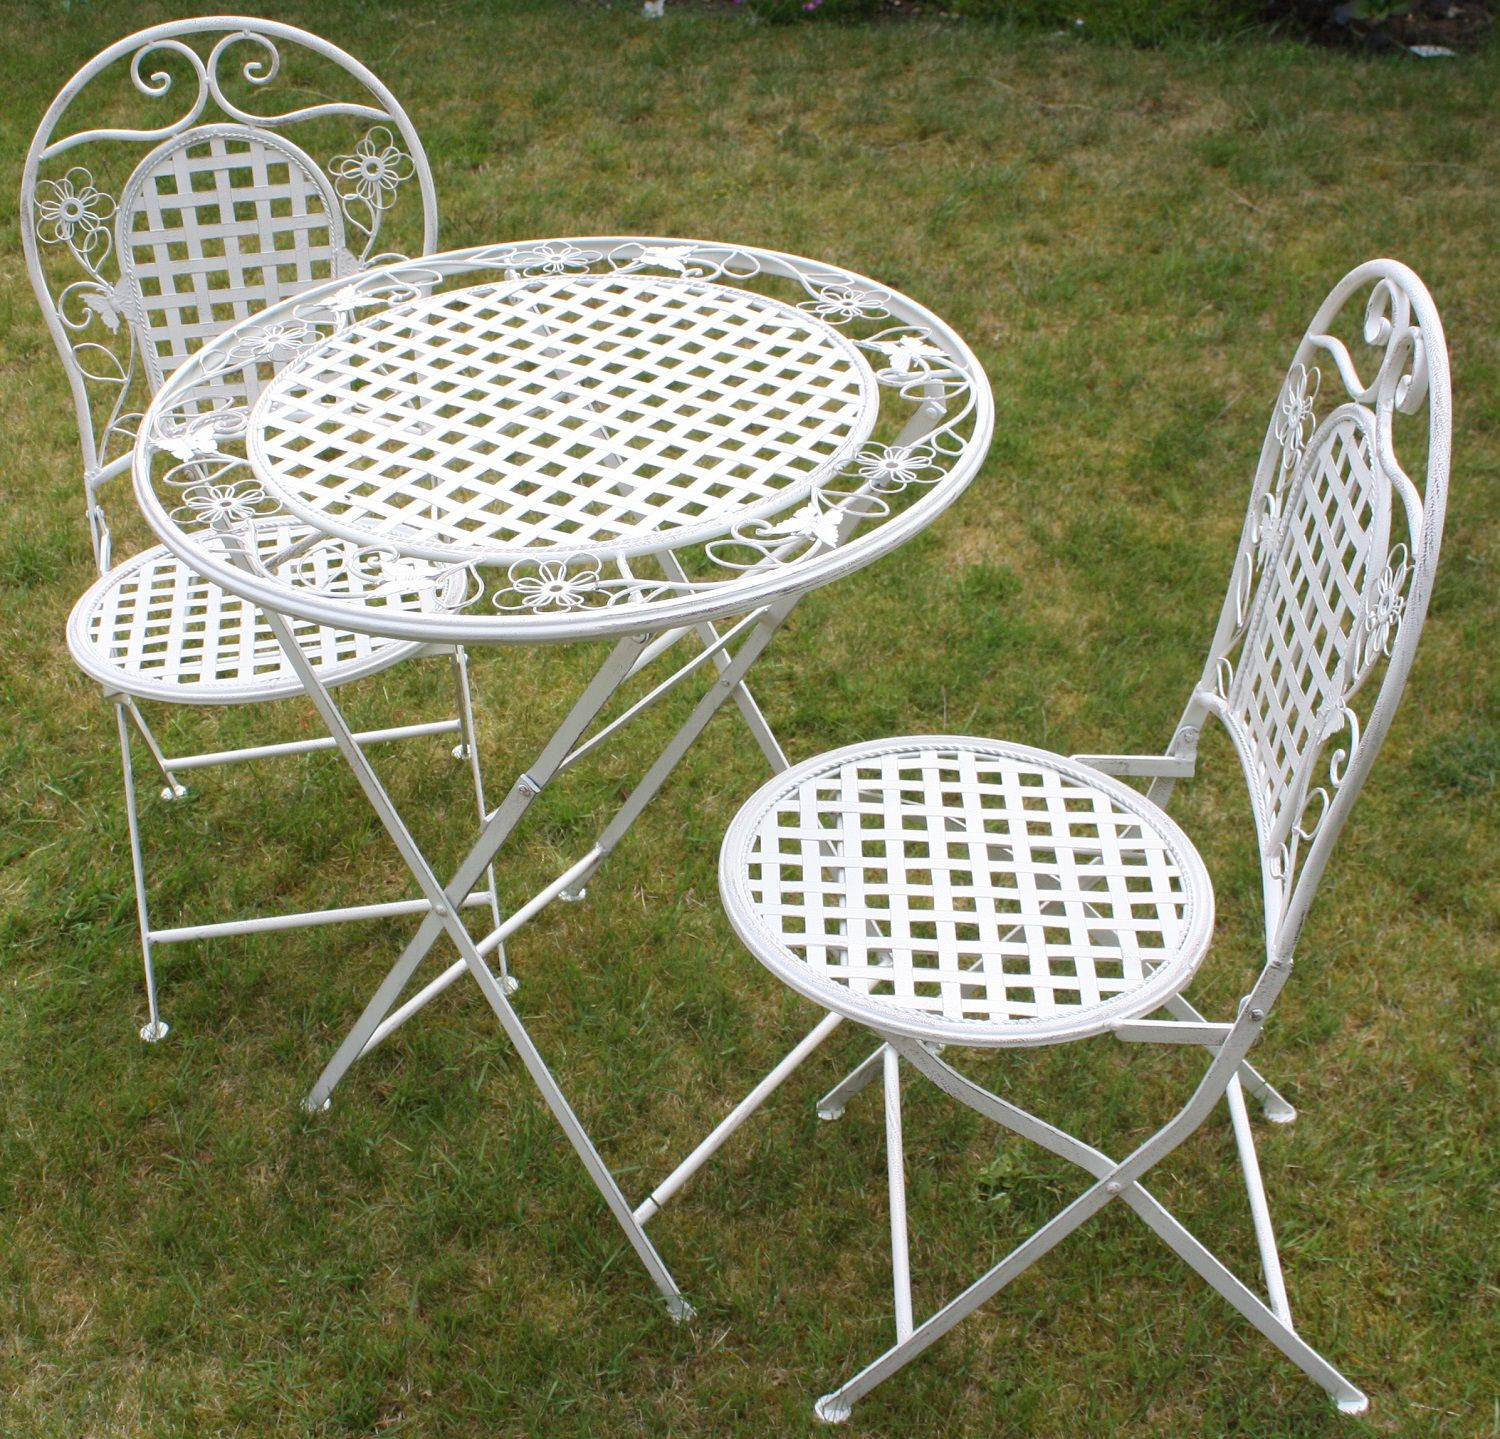 Lowes outdoor chairs A set of table and garden chair